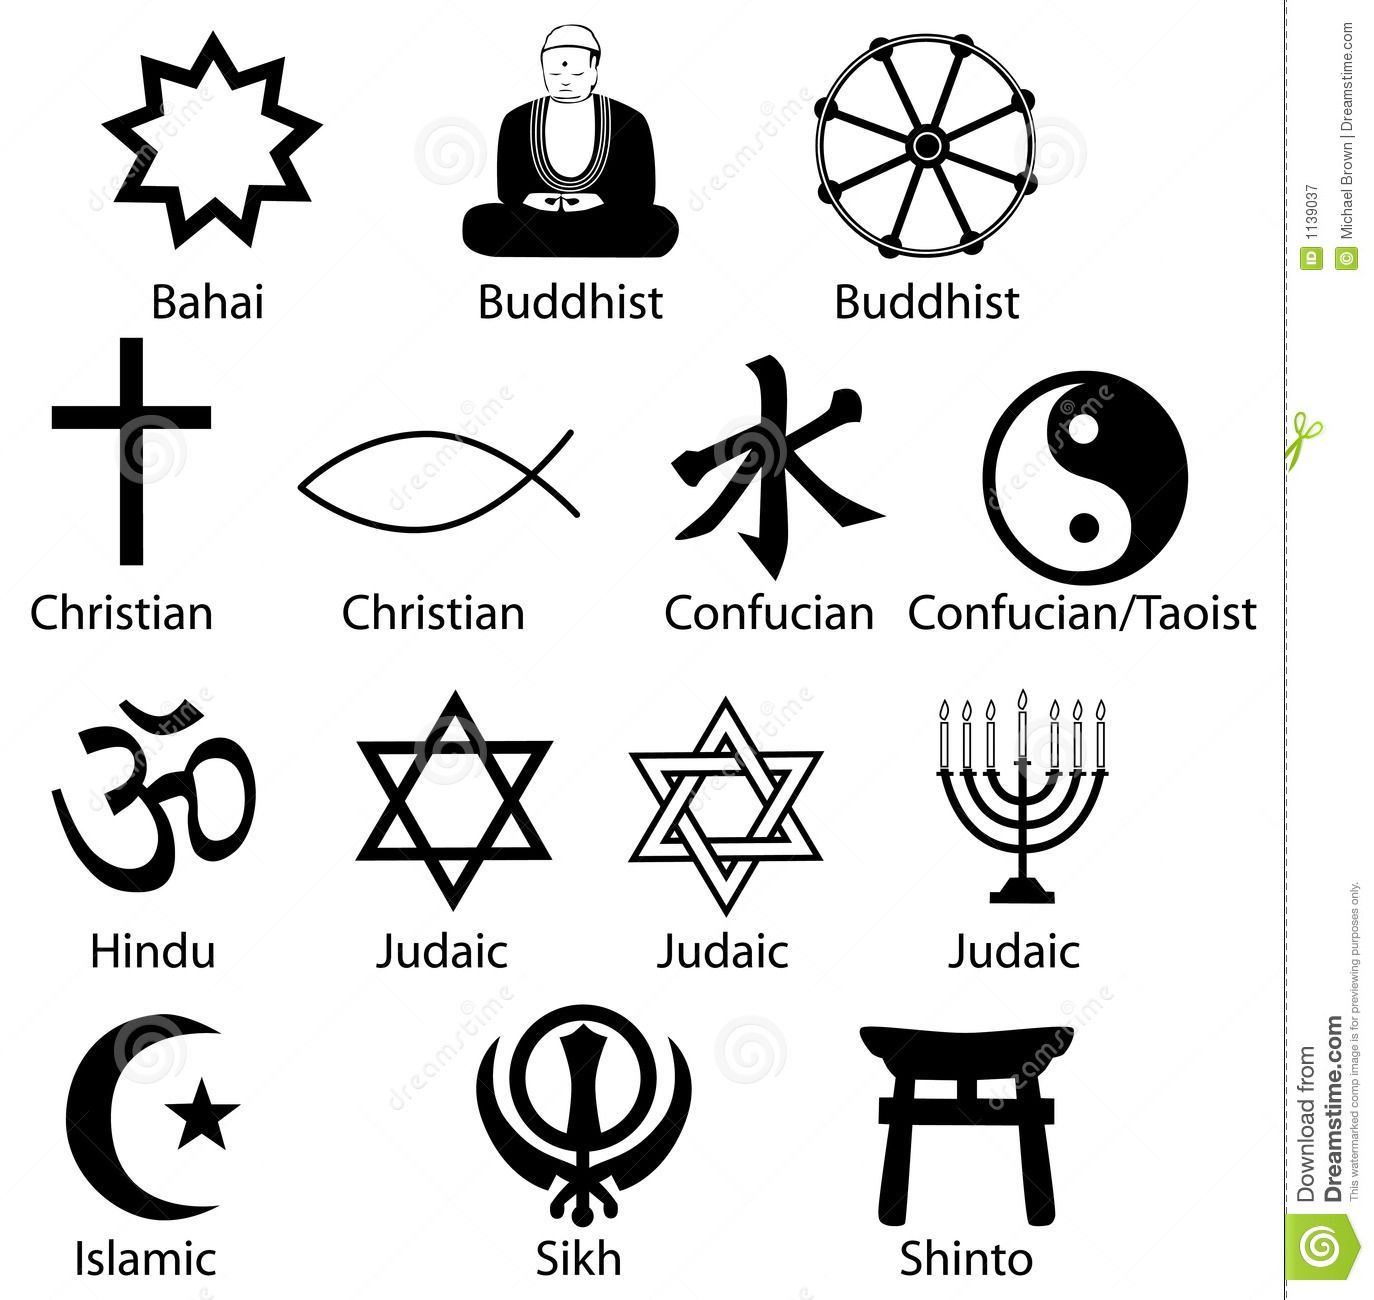 Taoist Symbols And Their Meanings Gallery Meaning Of This Symbol